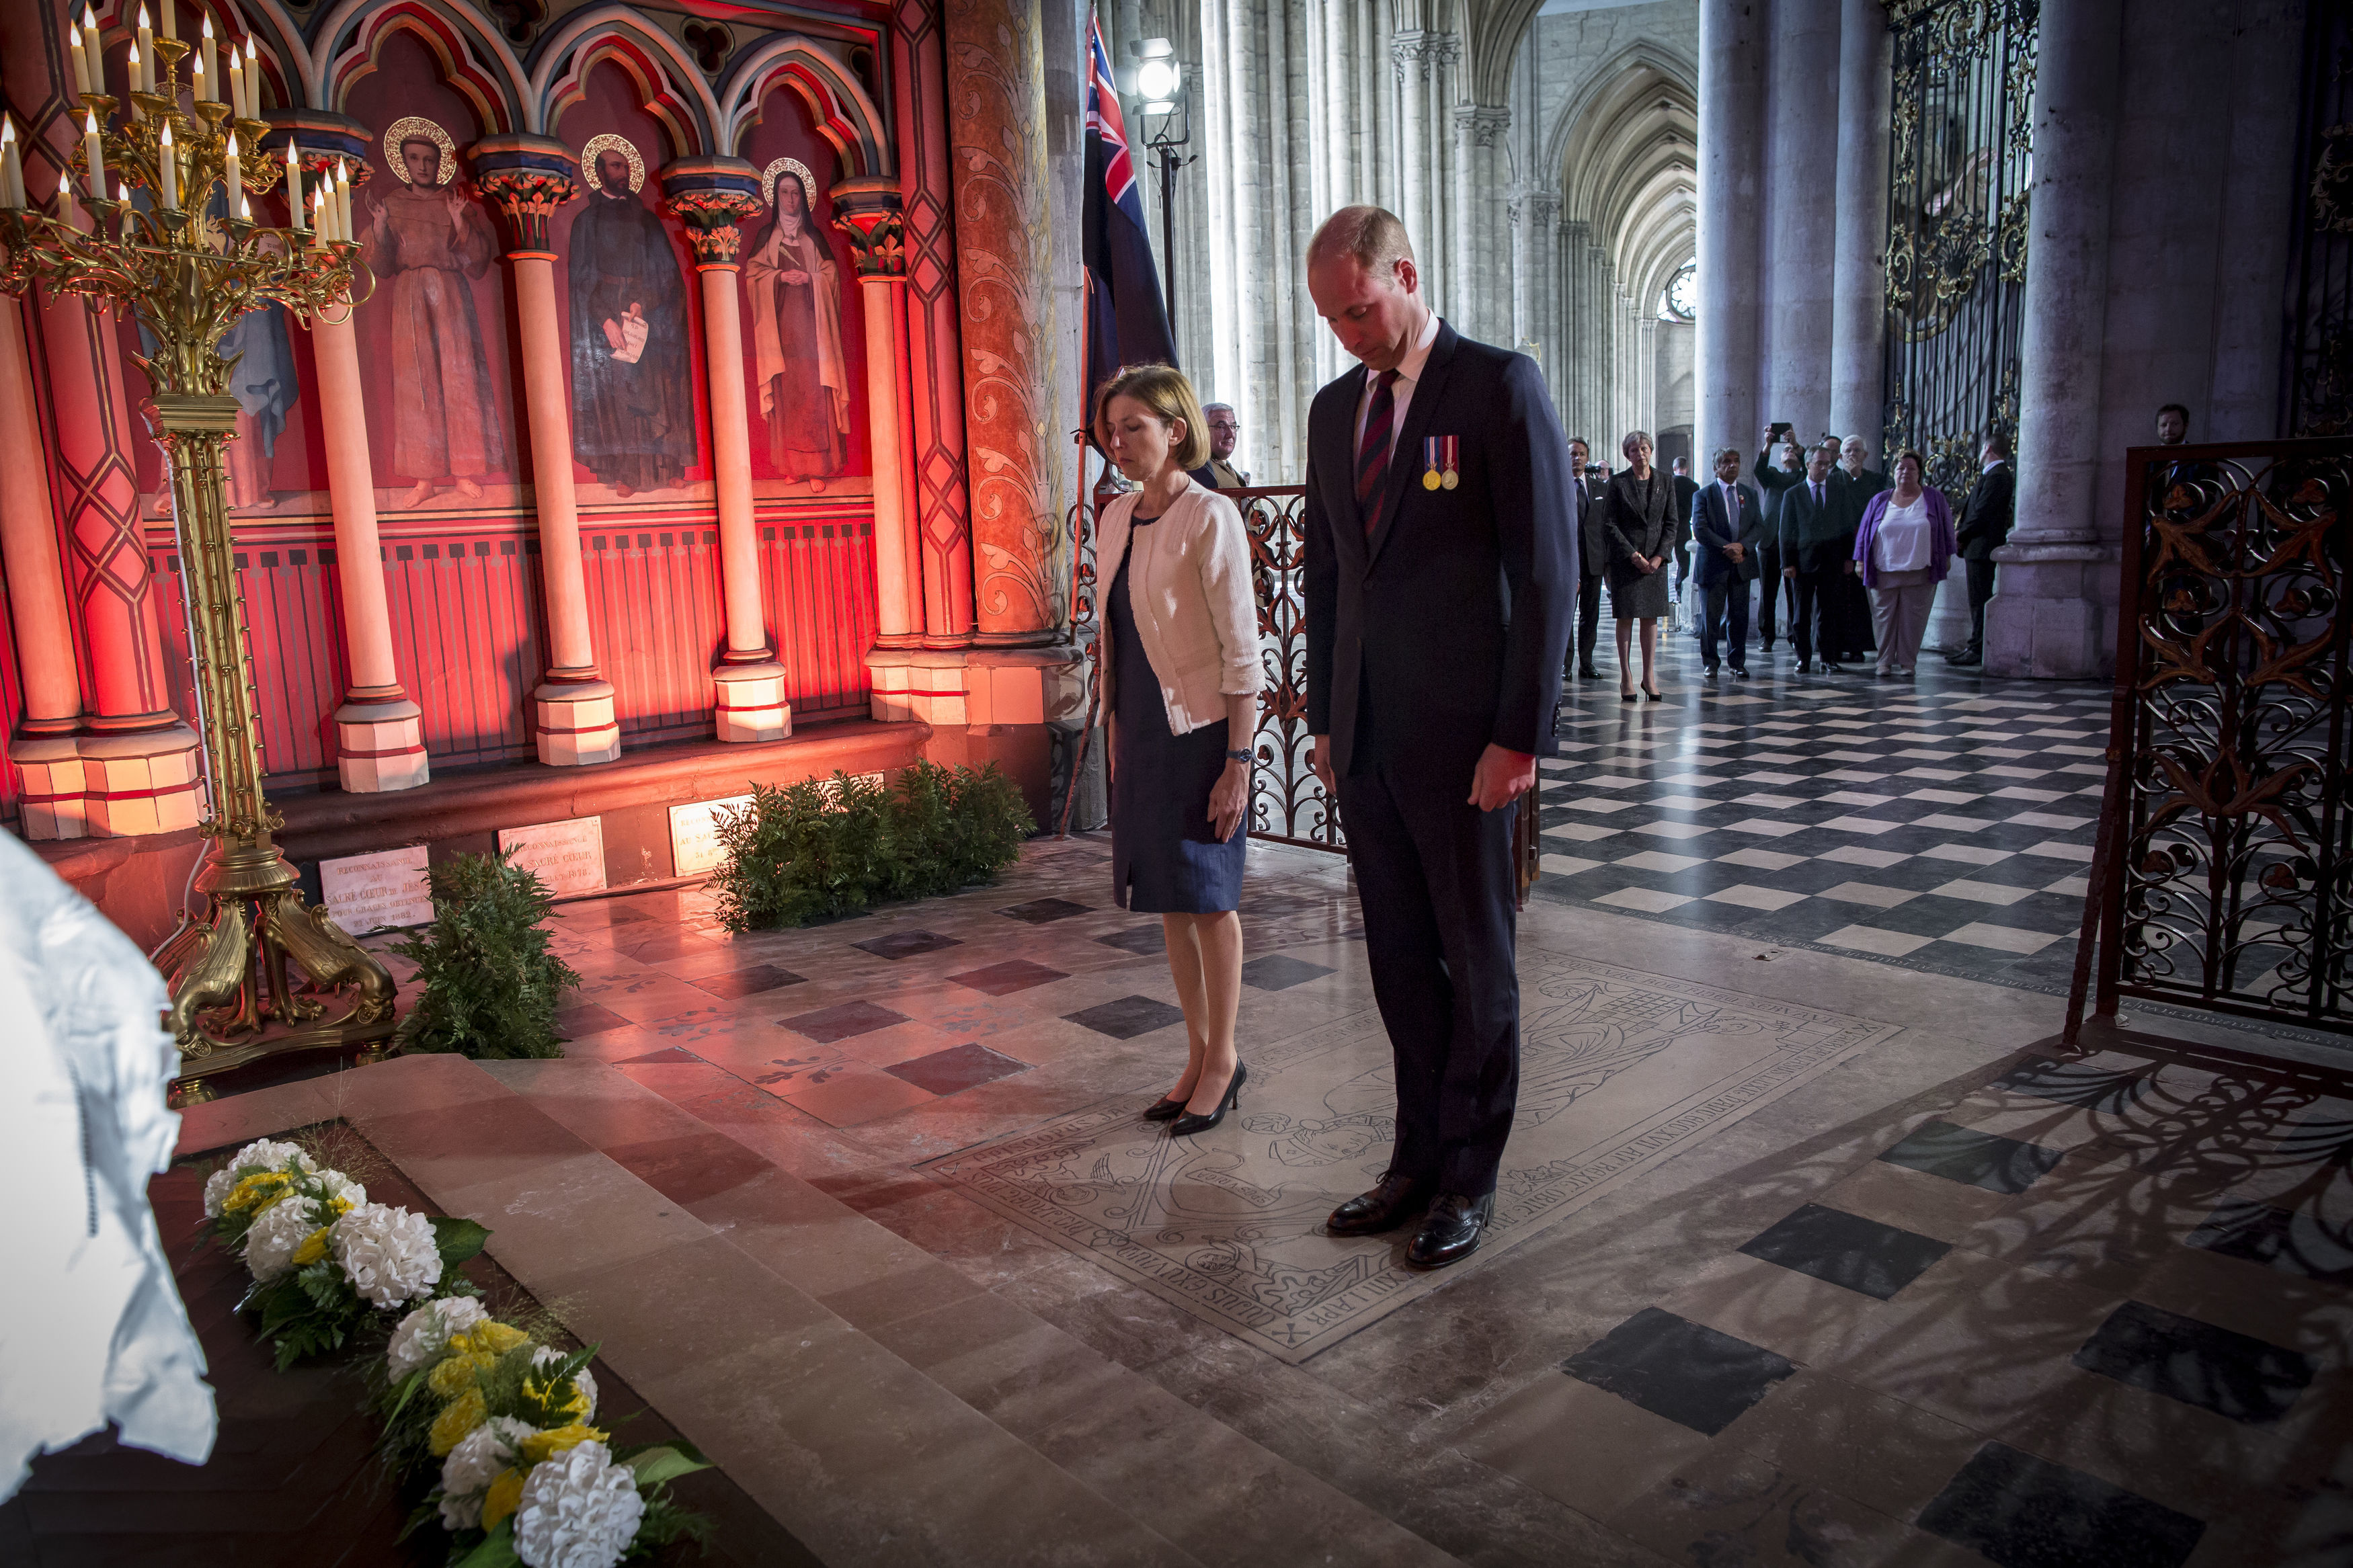 Commemorating the Battle of Amiens